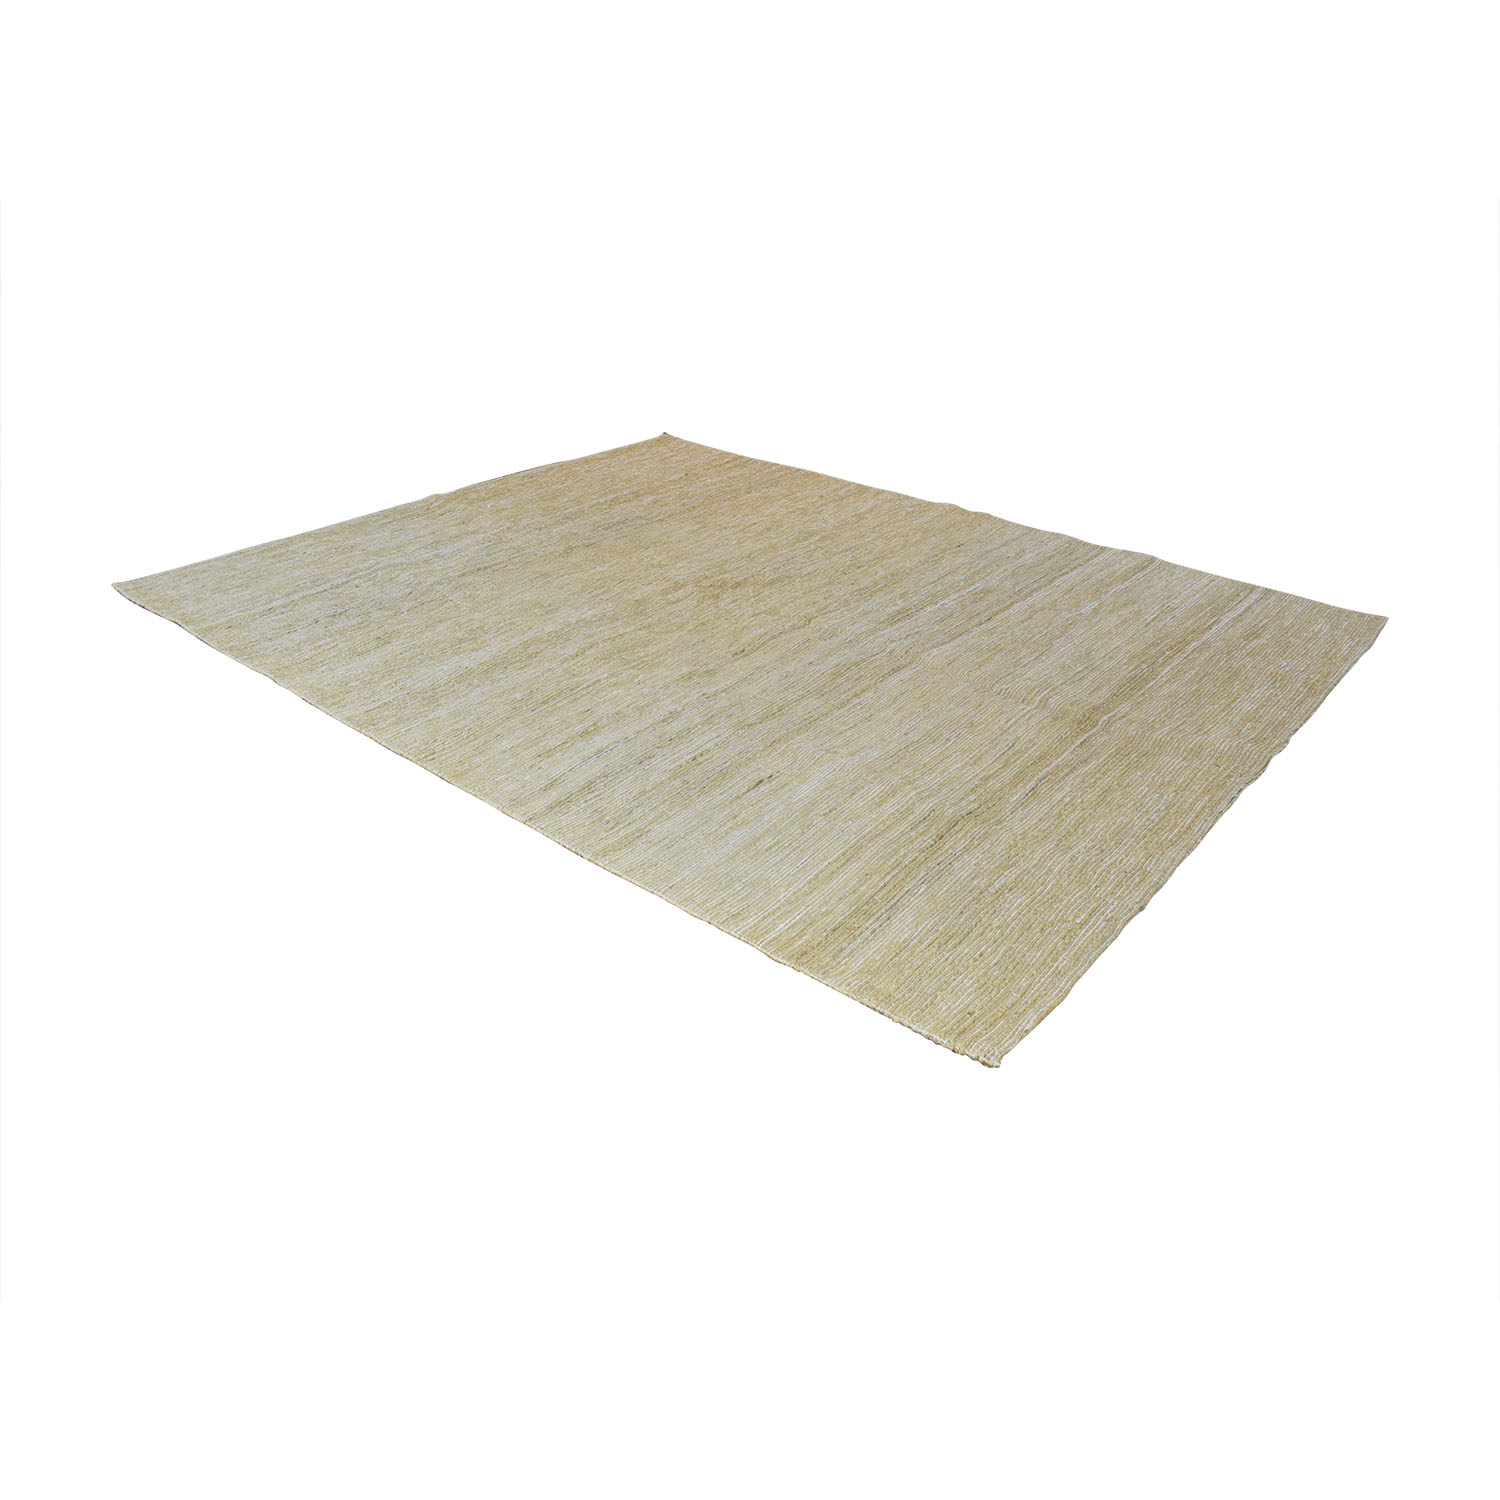 Article Article Jota Sesame Ivory Rug dimensions